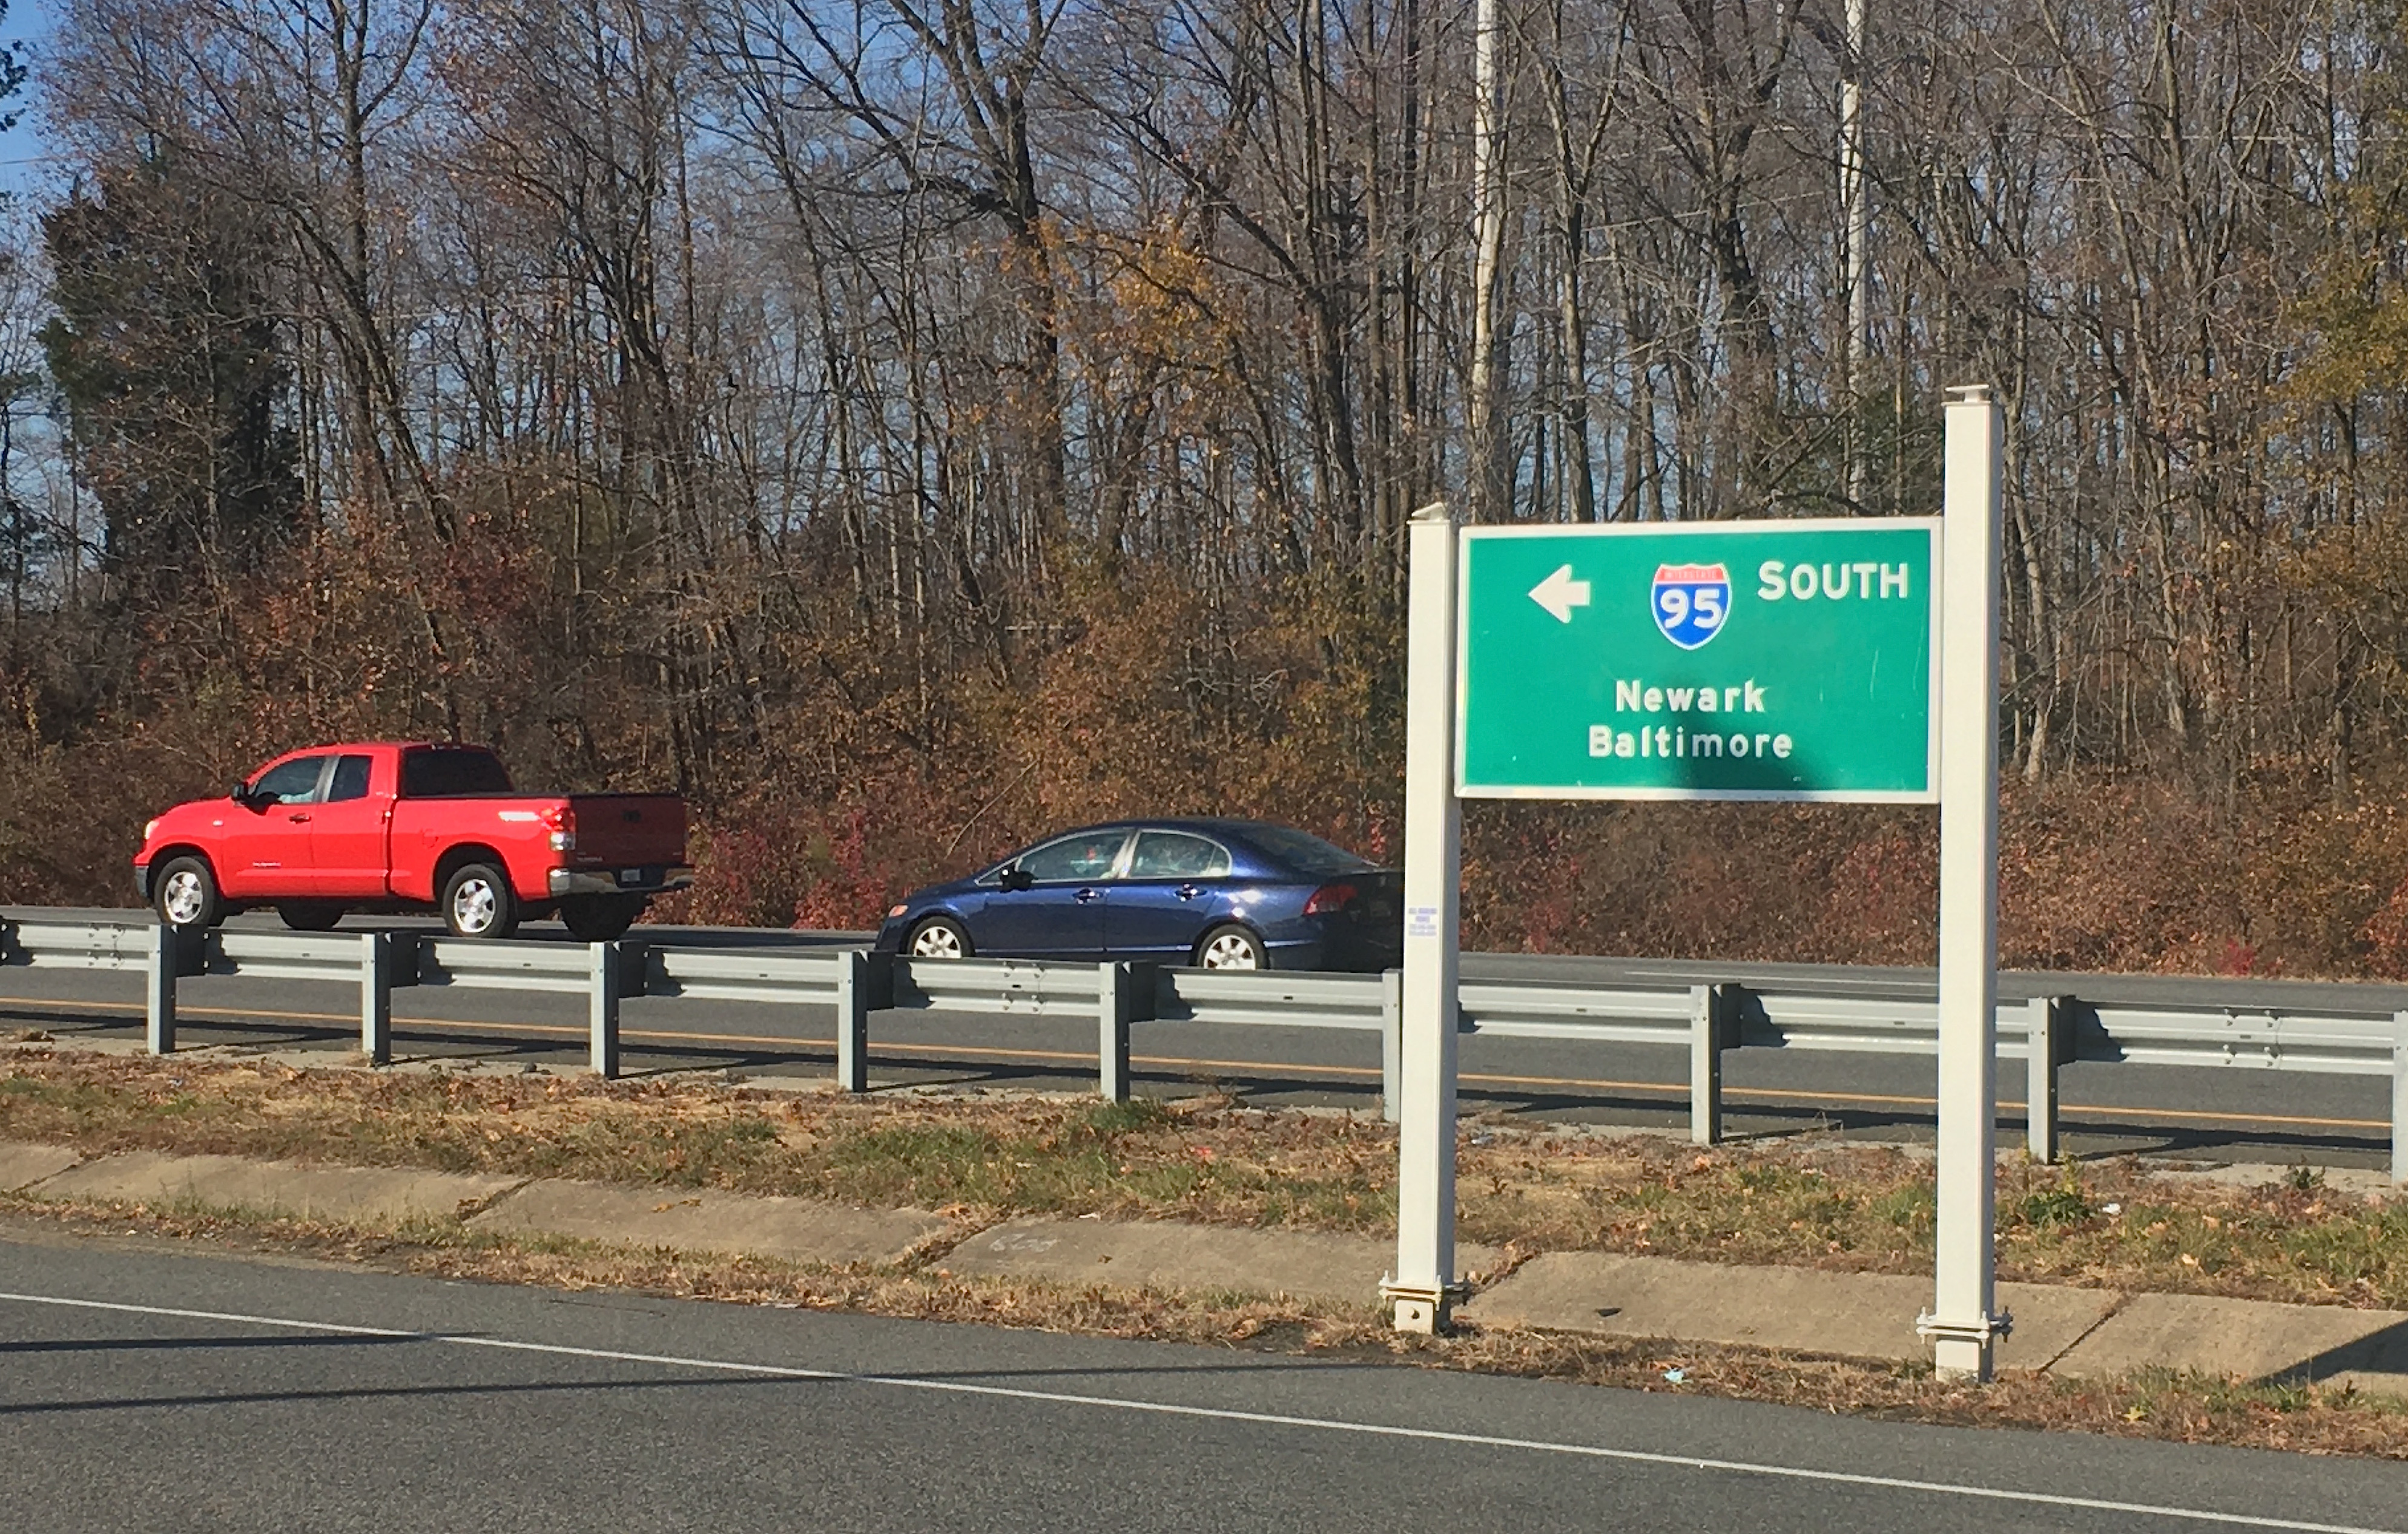 State lifts shelter-in-place order prompted by hazmat crash on I-95